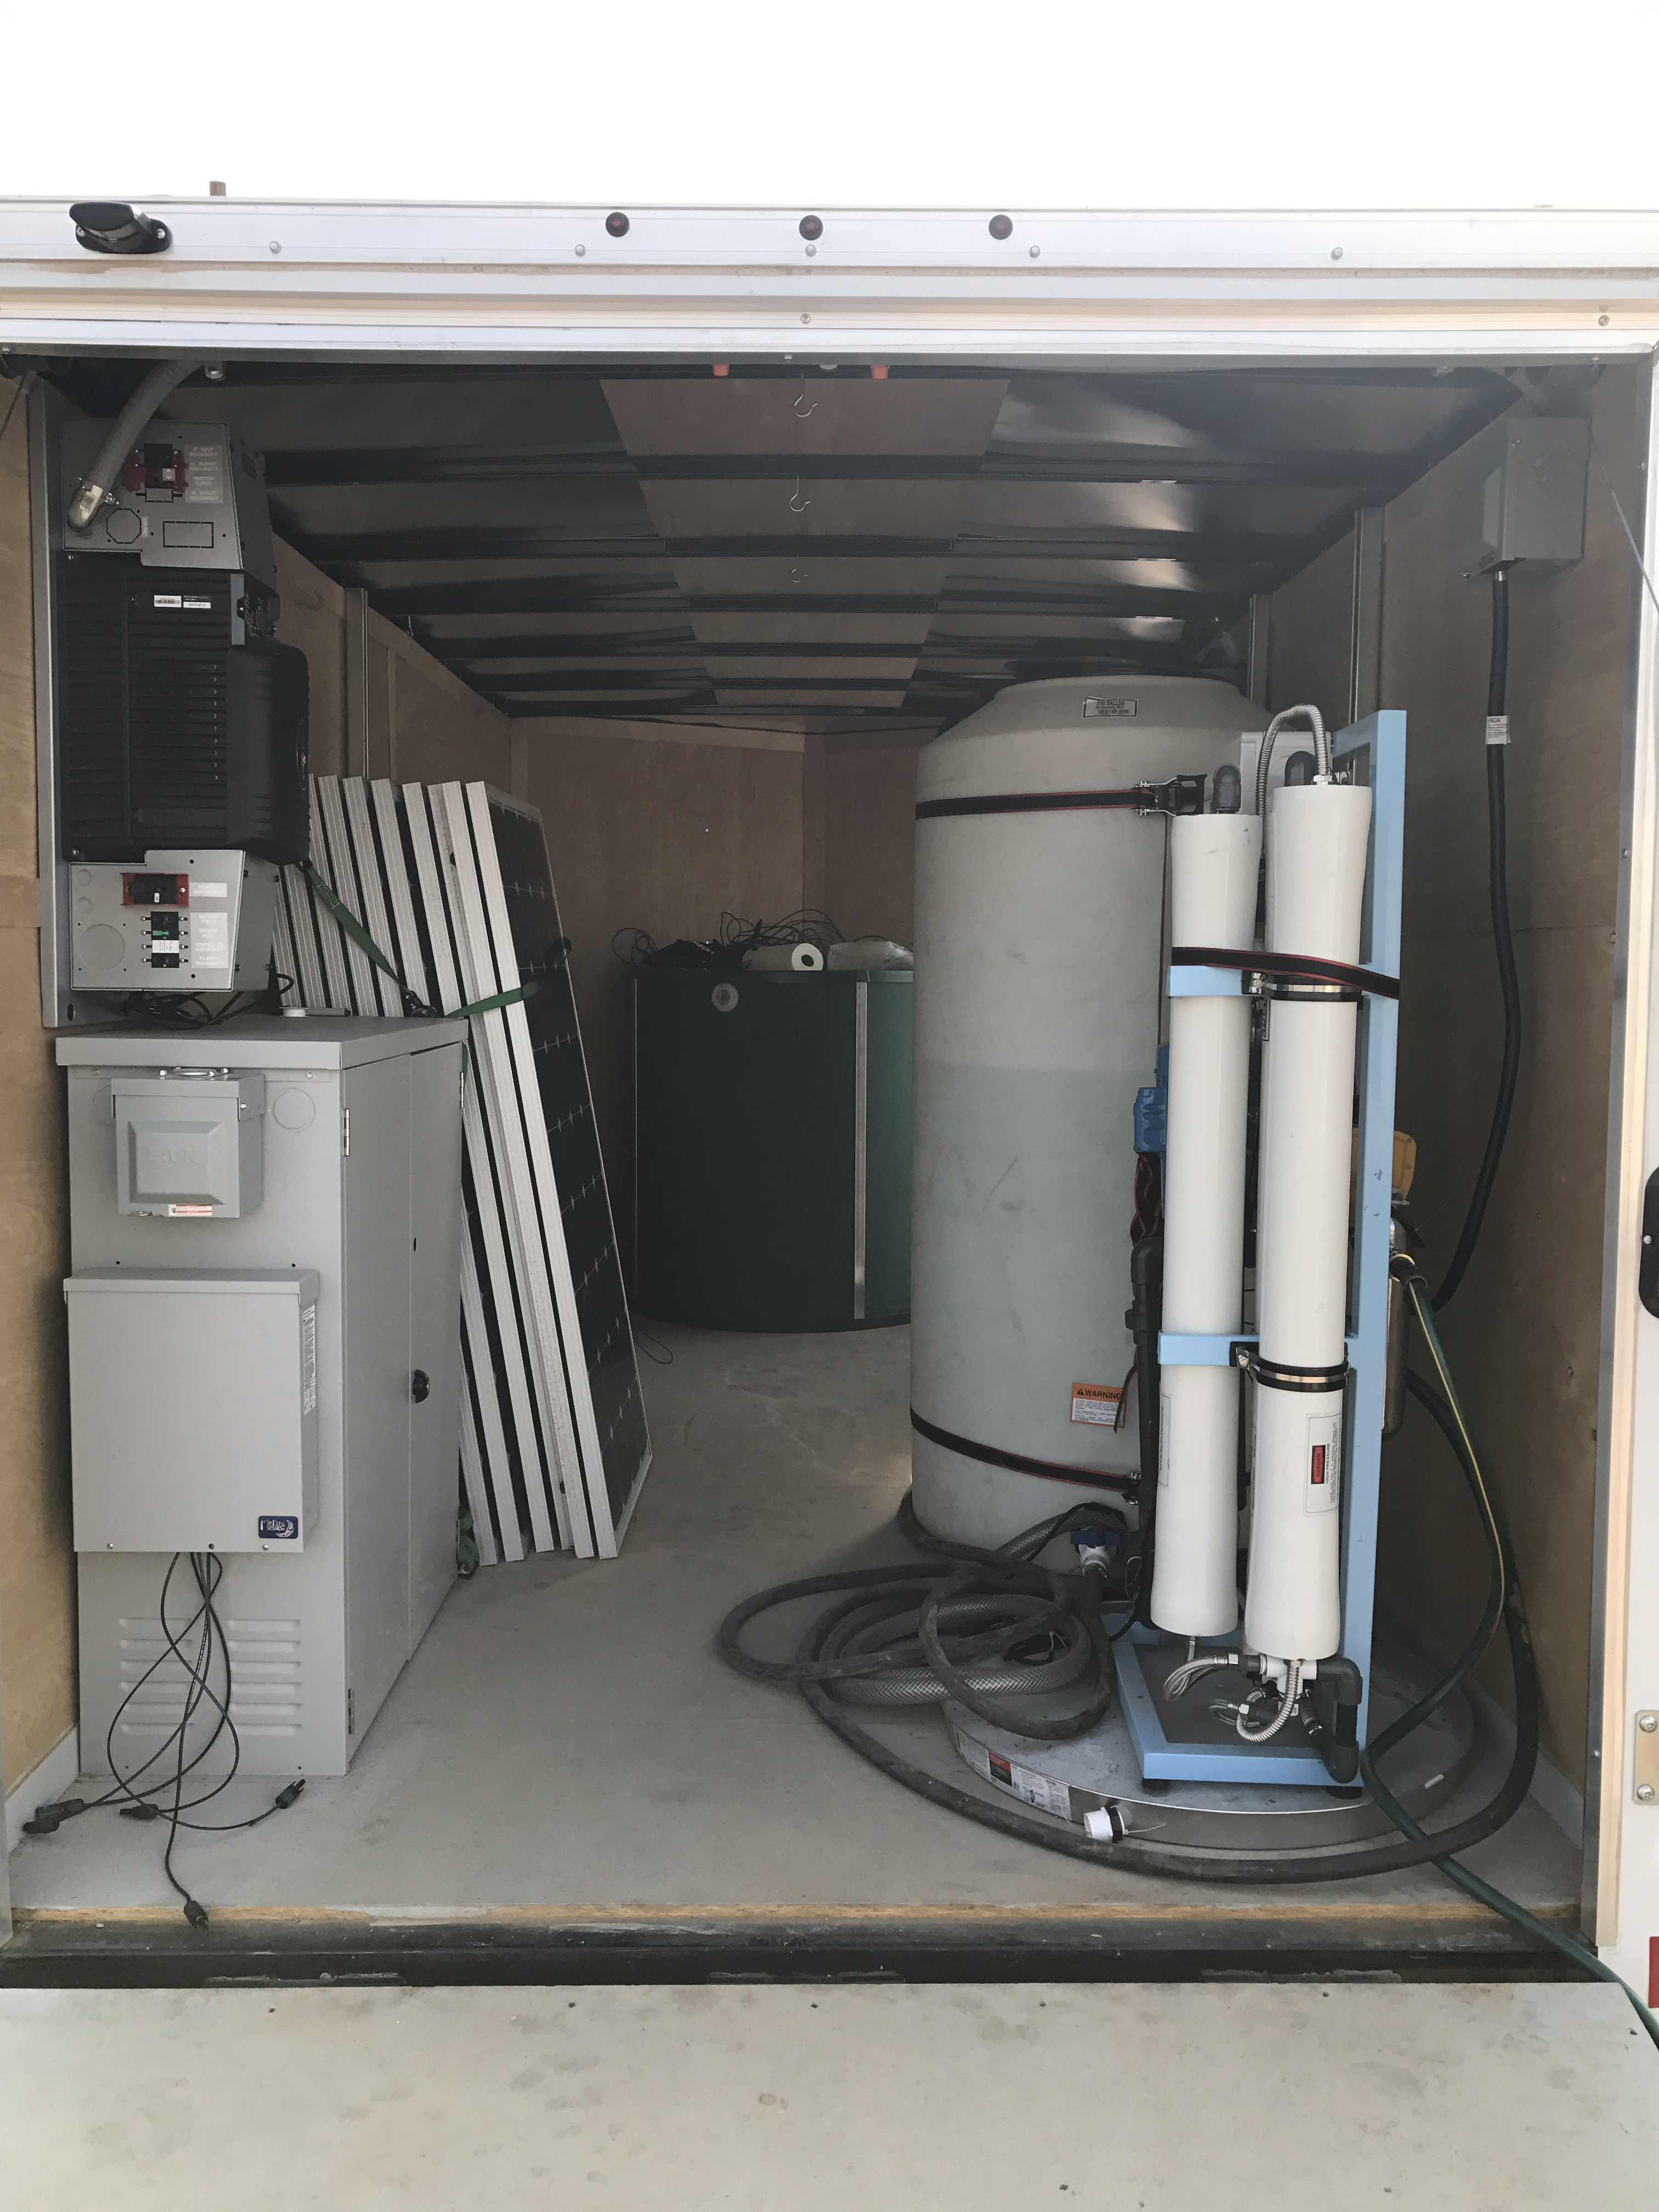 Image of the inside of a containerized microgrid.